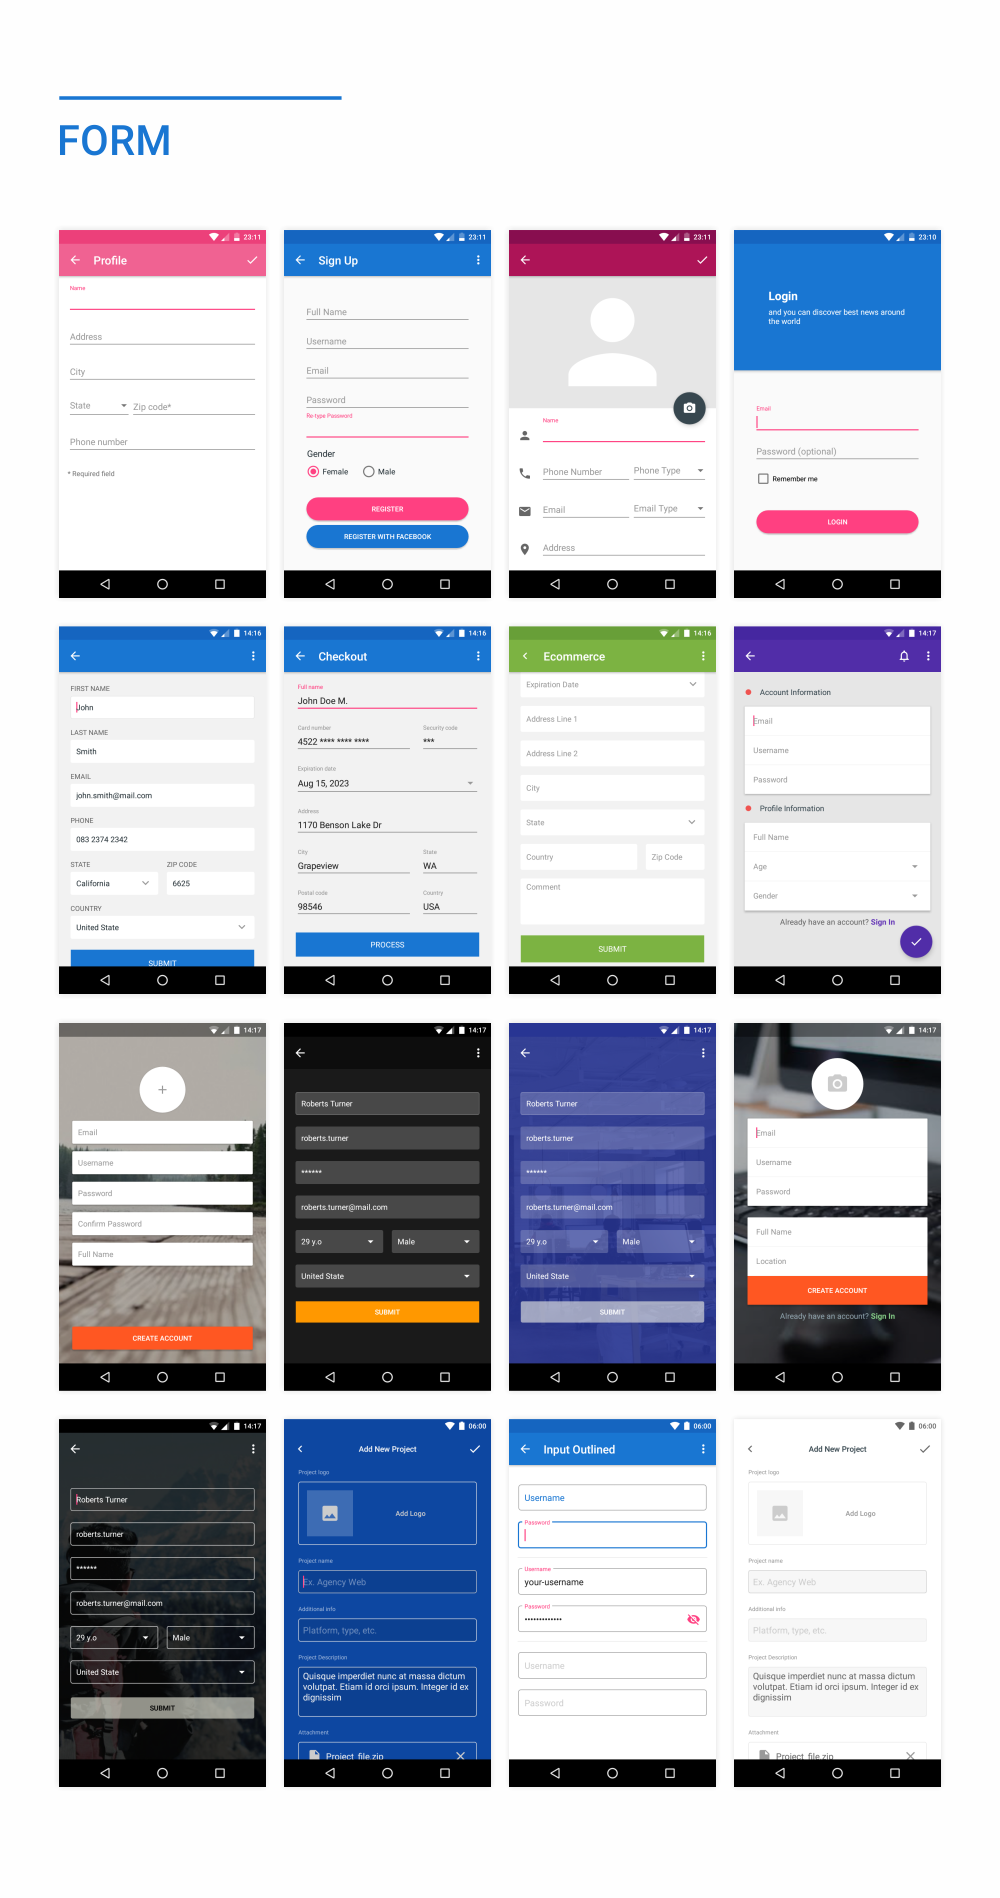 MaterialX - Android Material Design UI Components 2.4 - 41